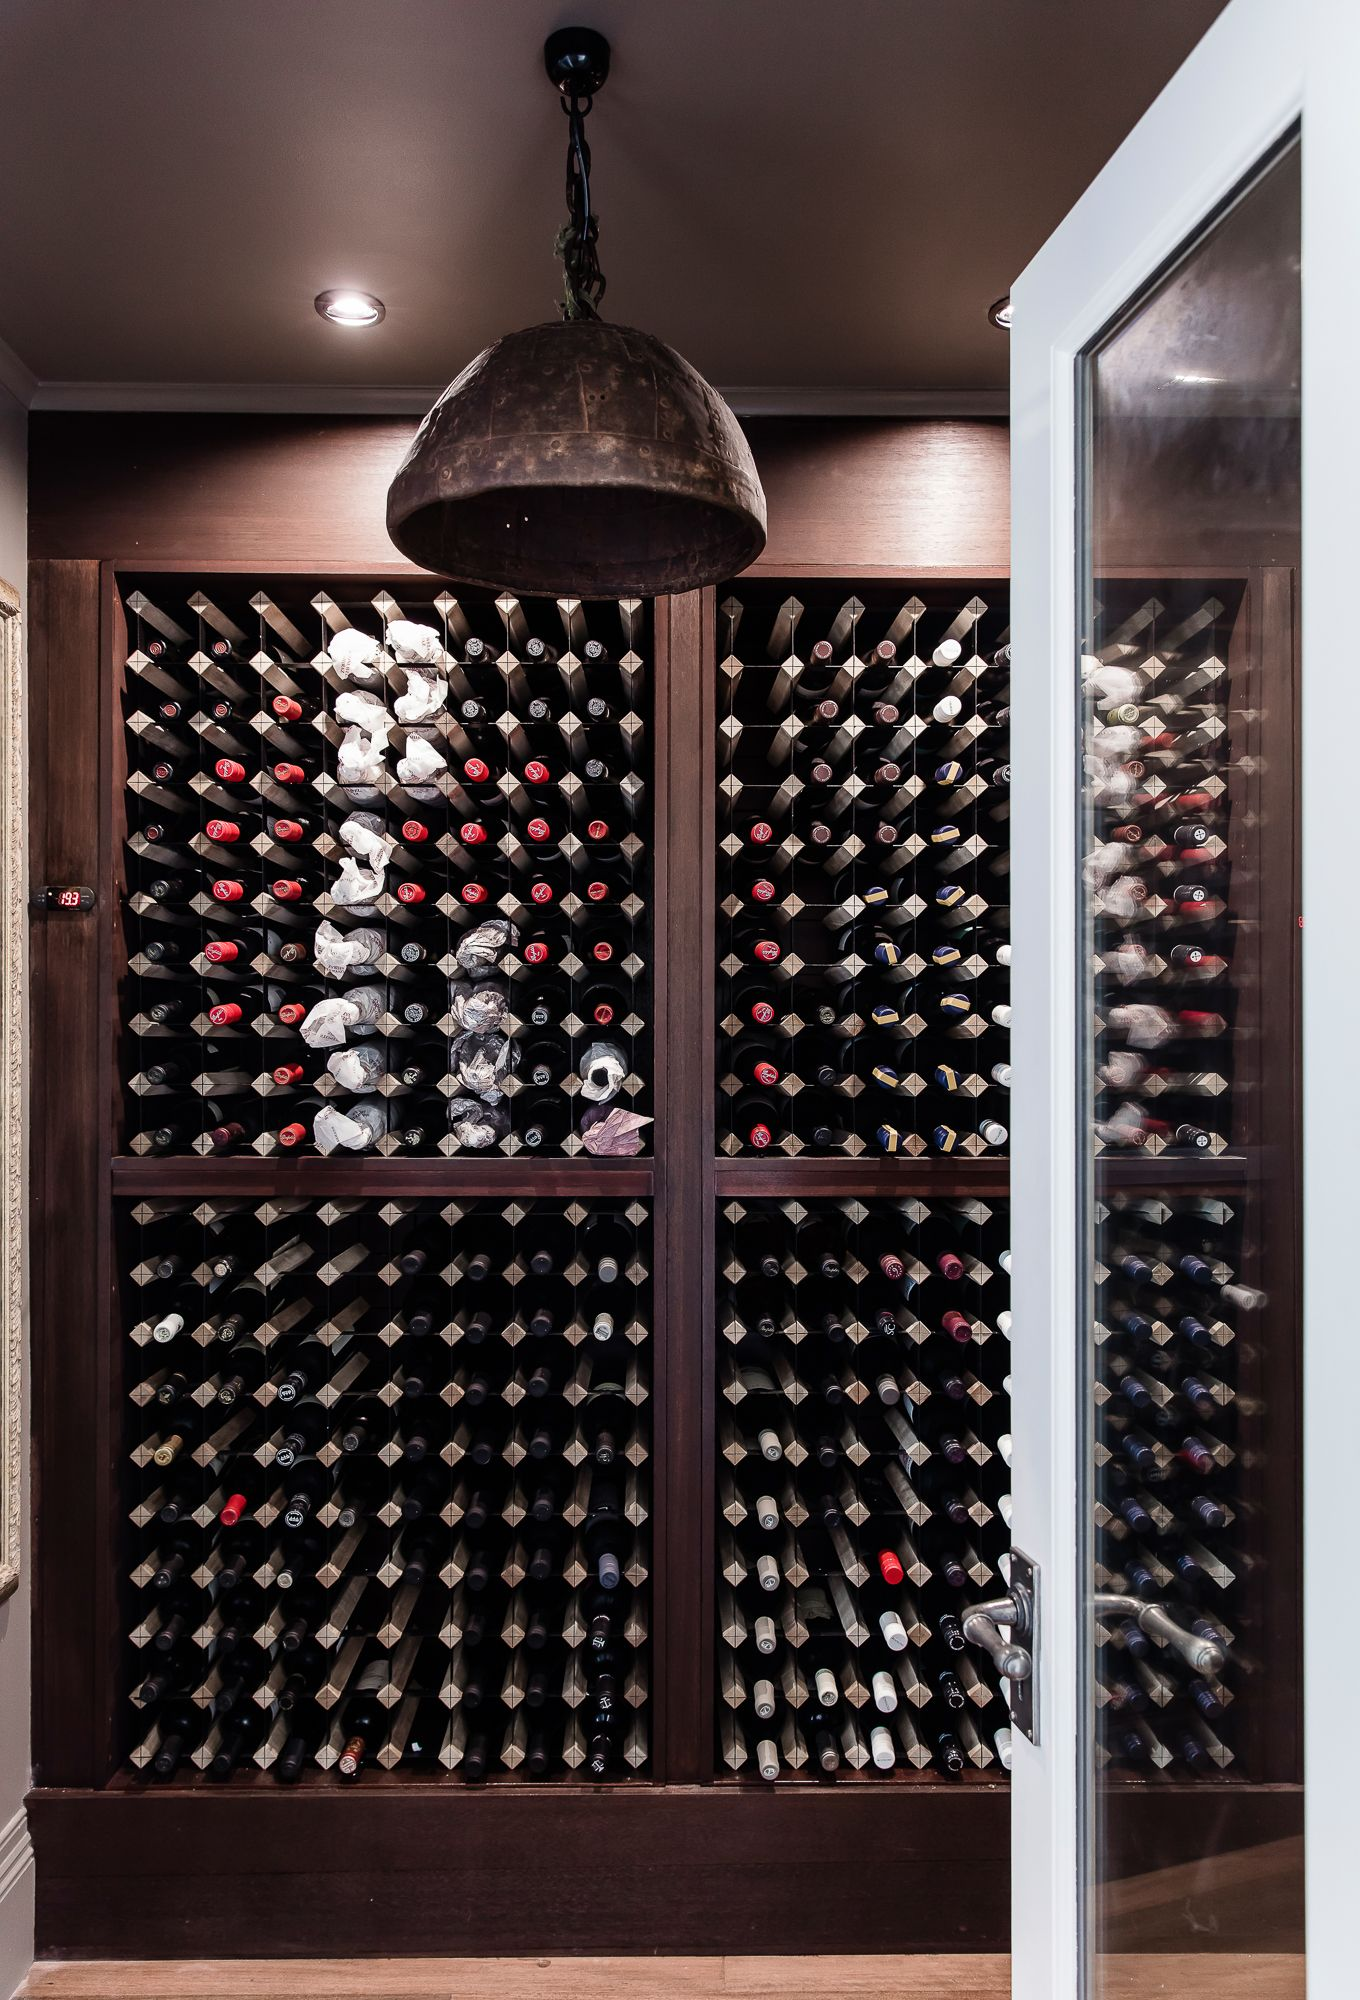 Red Or White Wine Spectacular Cellar For This Home On Sydney S